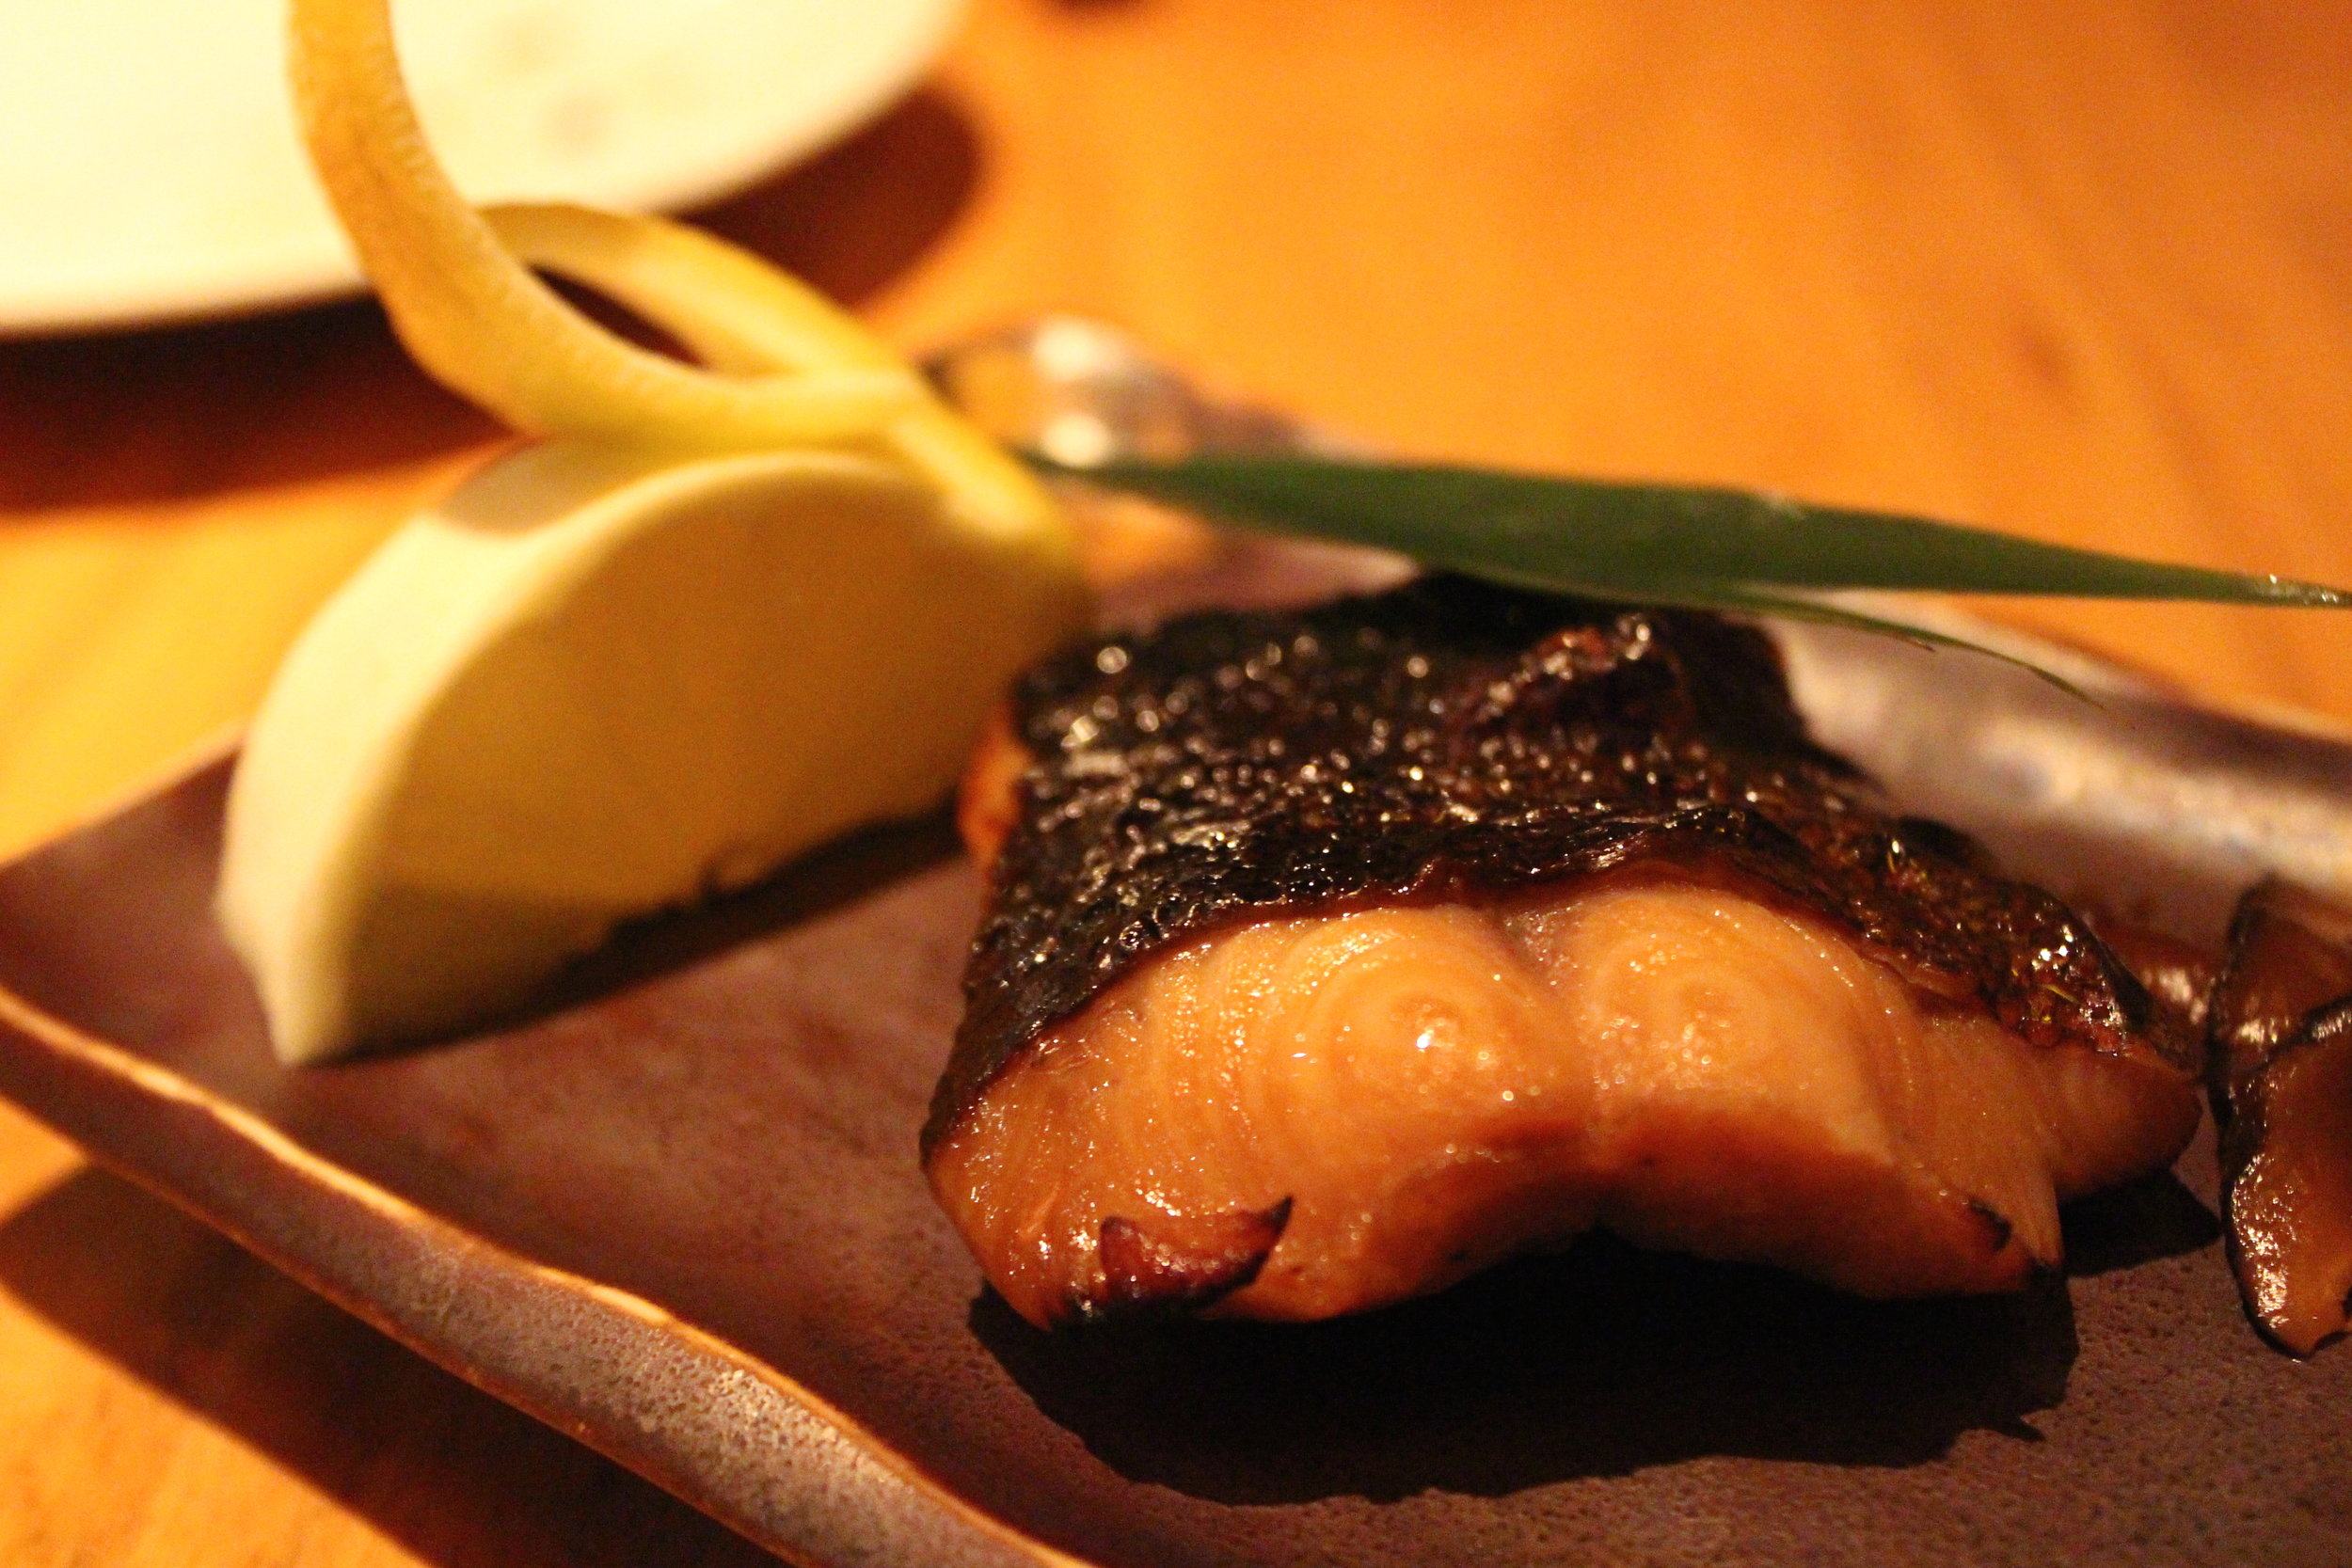 Gindara Yuan Yaki: Grilled Fillets of Cod Fish Steeped in Sweet Soy Sauce